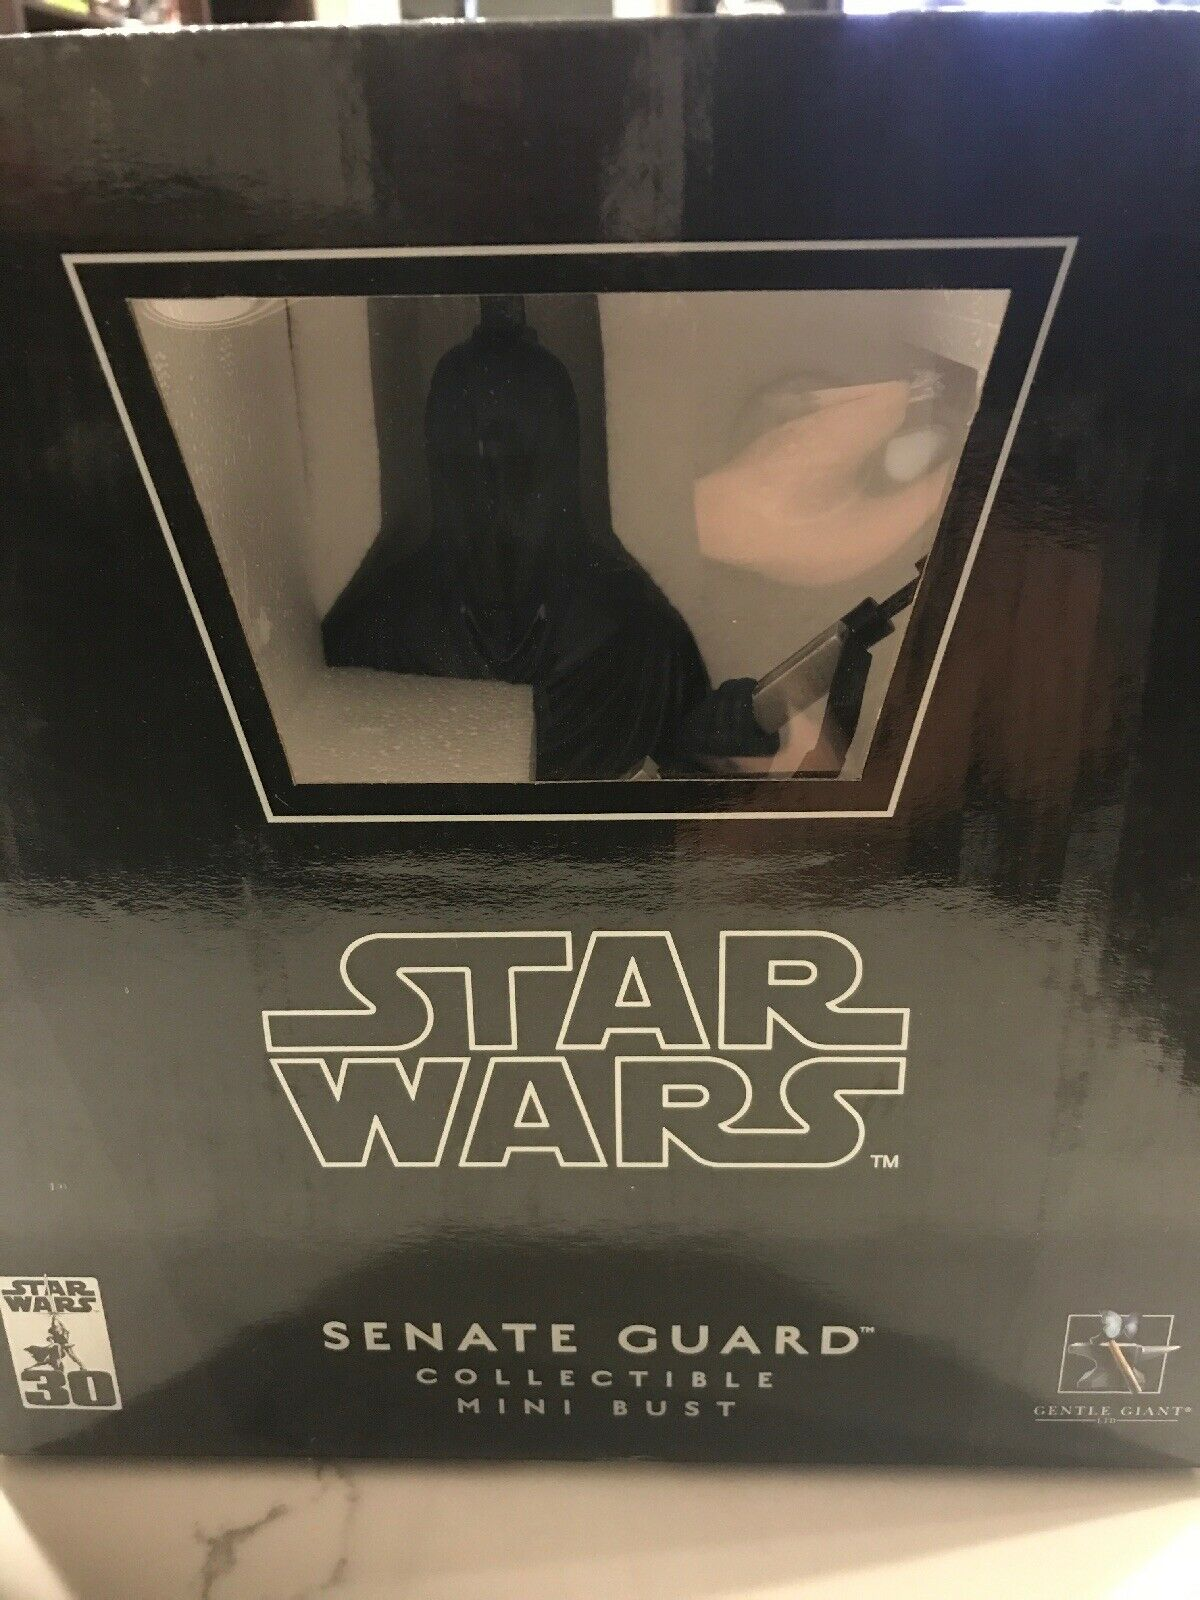 STAR WARS Gentle Giant Senate Guard Mini Bust